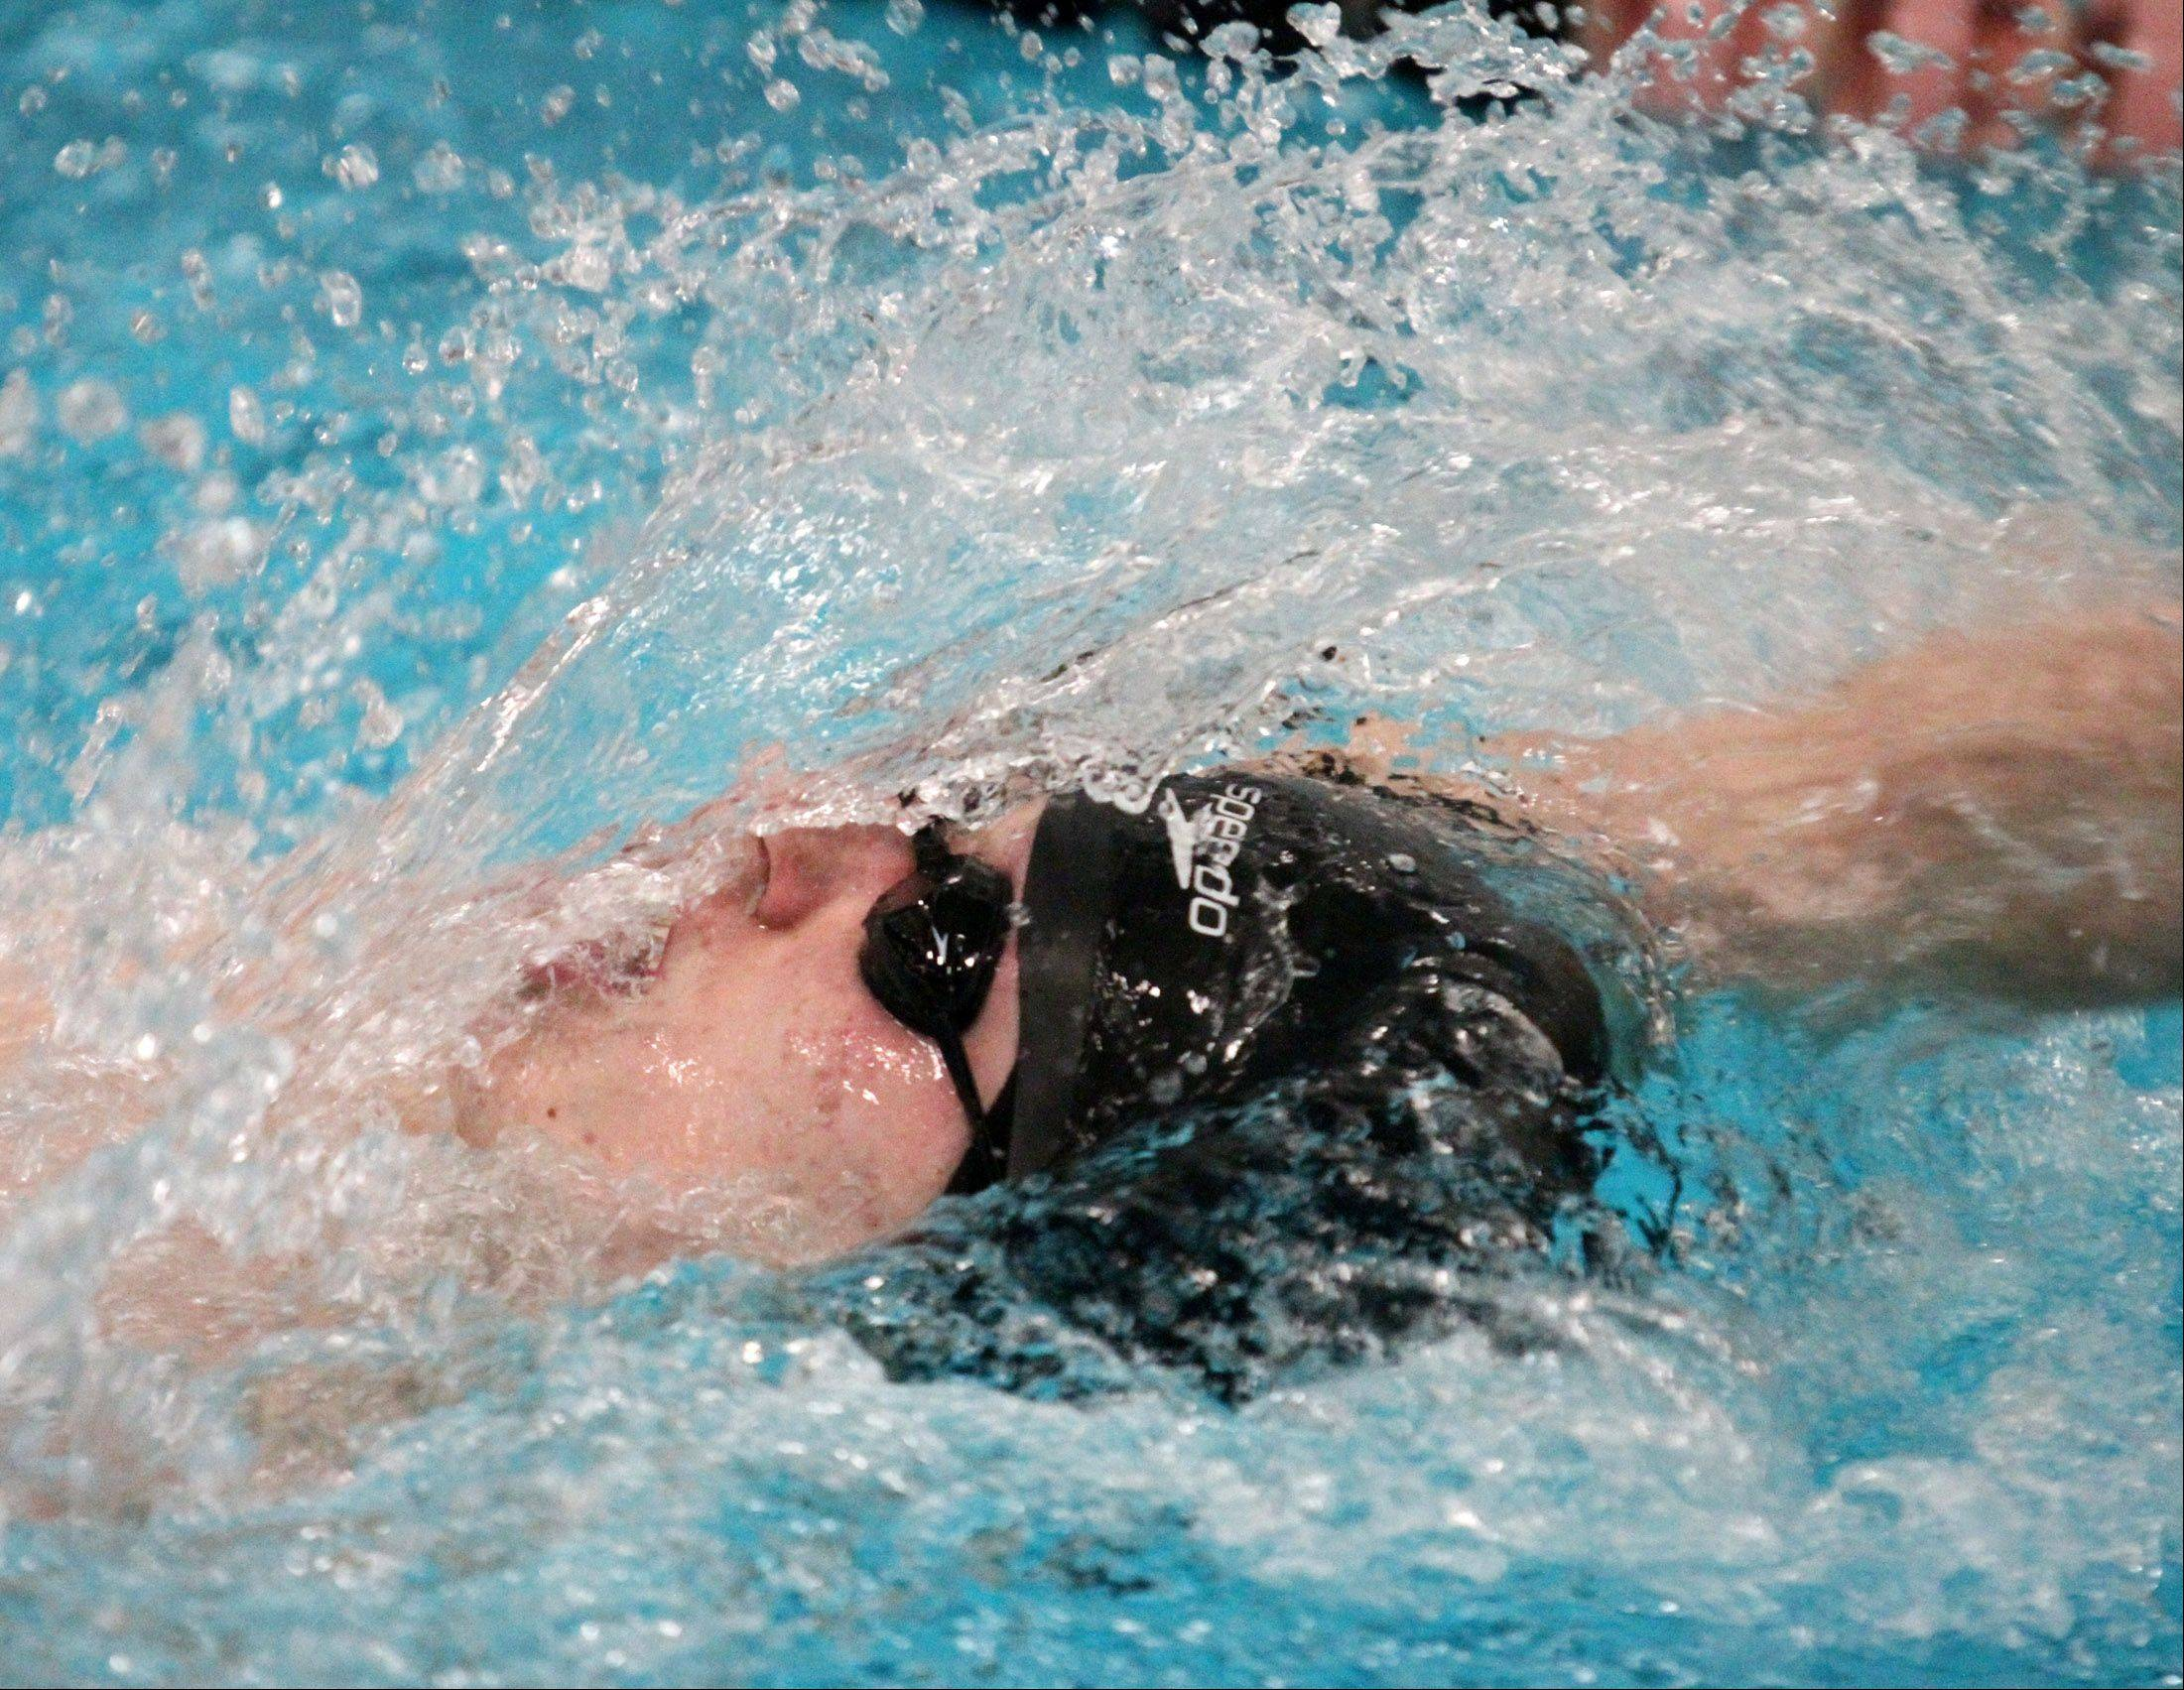 South Elgin�s Alex Duffy placed second in the 200-yard individual melody at the sectional swim meet at St. Charles East on Saturday.